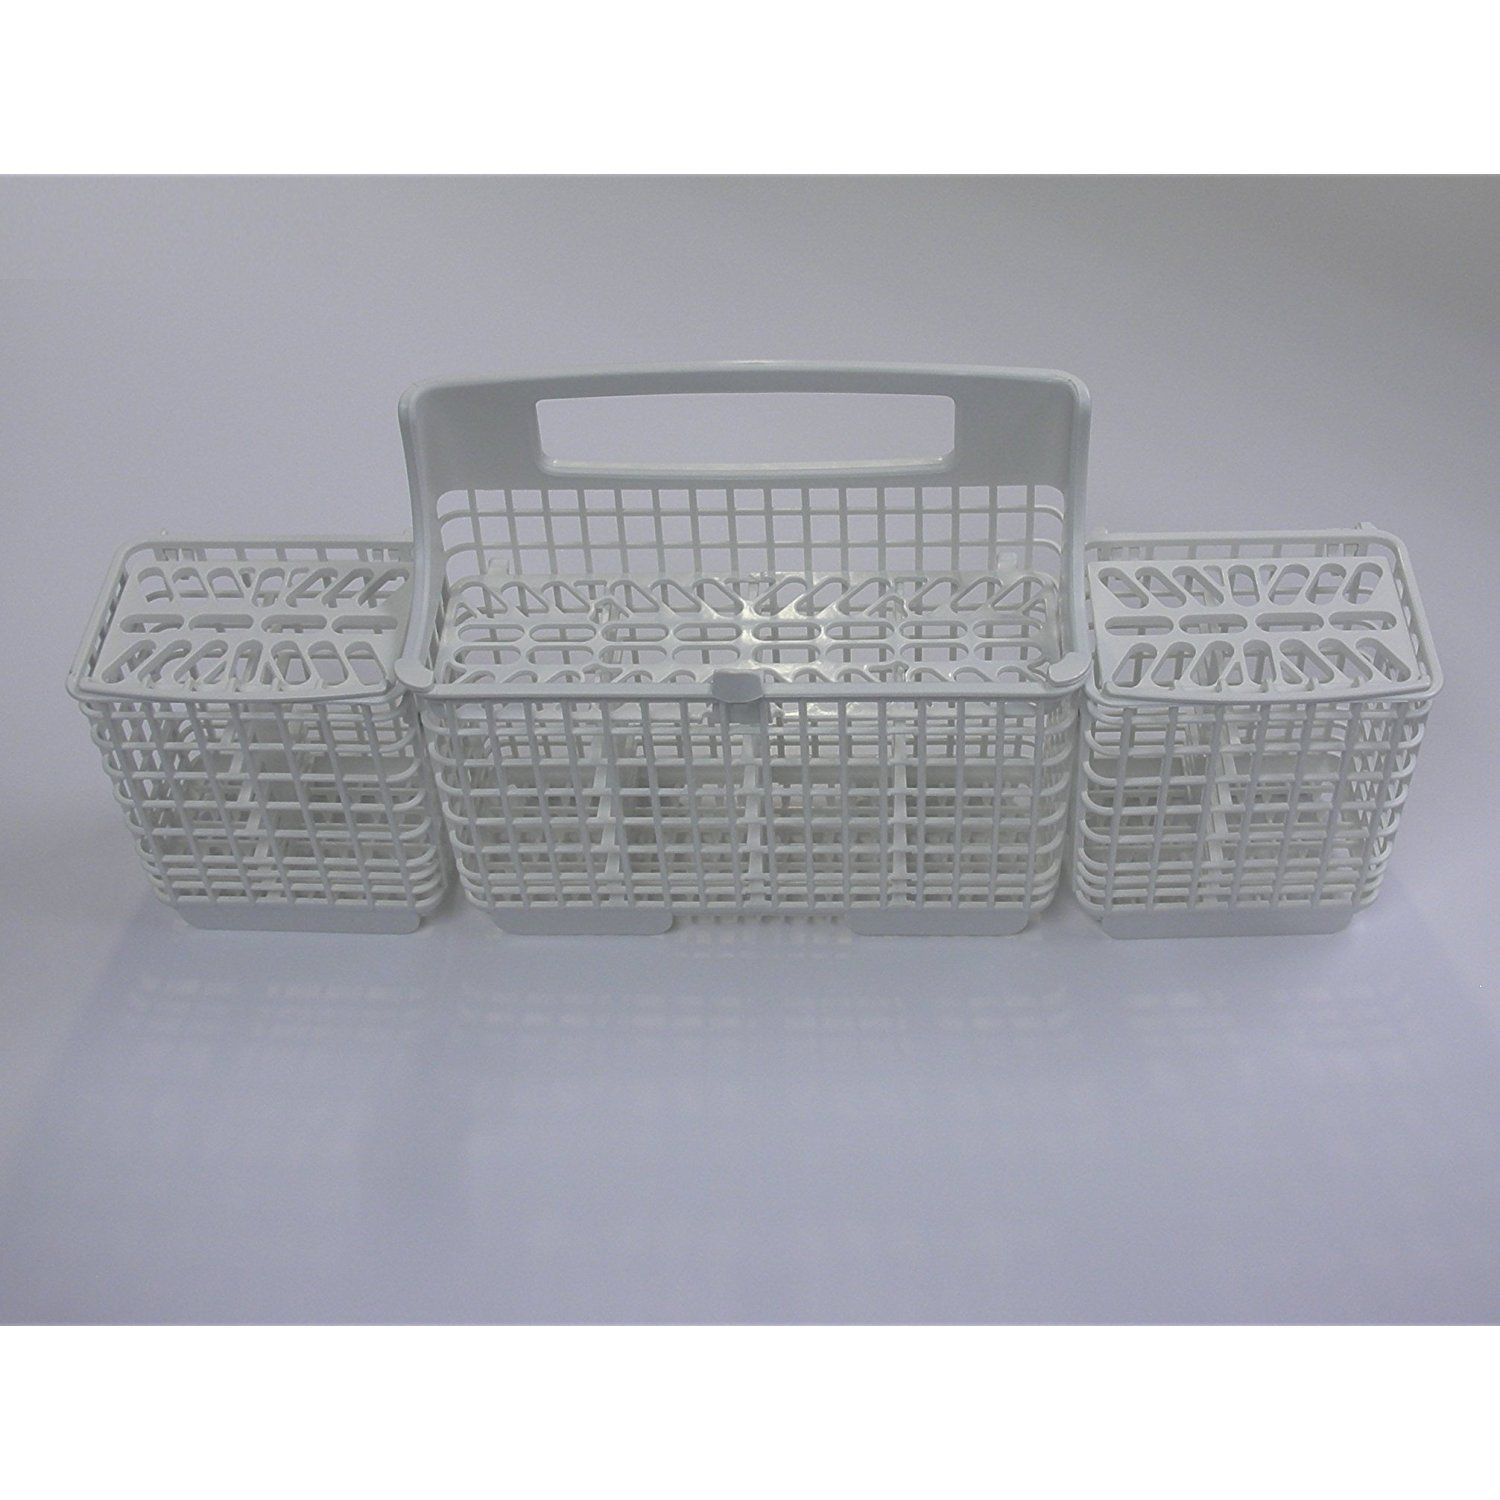 Kenmore Dishwasher Silverware Basket 8562080 White Details Can